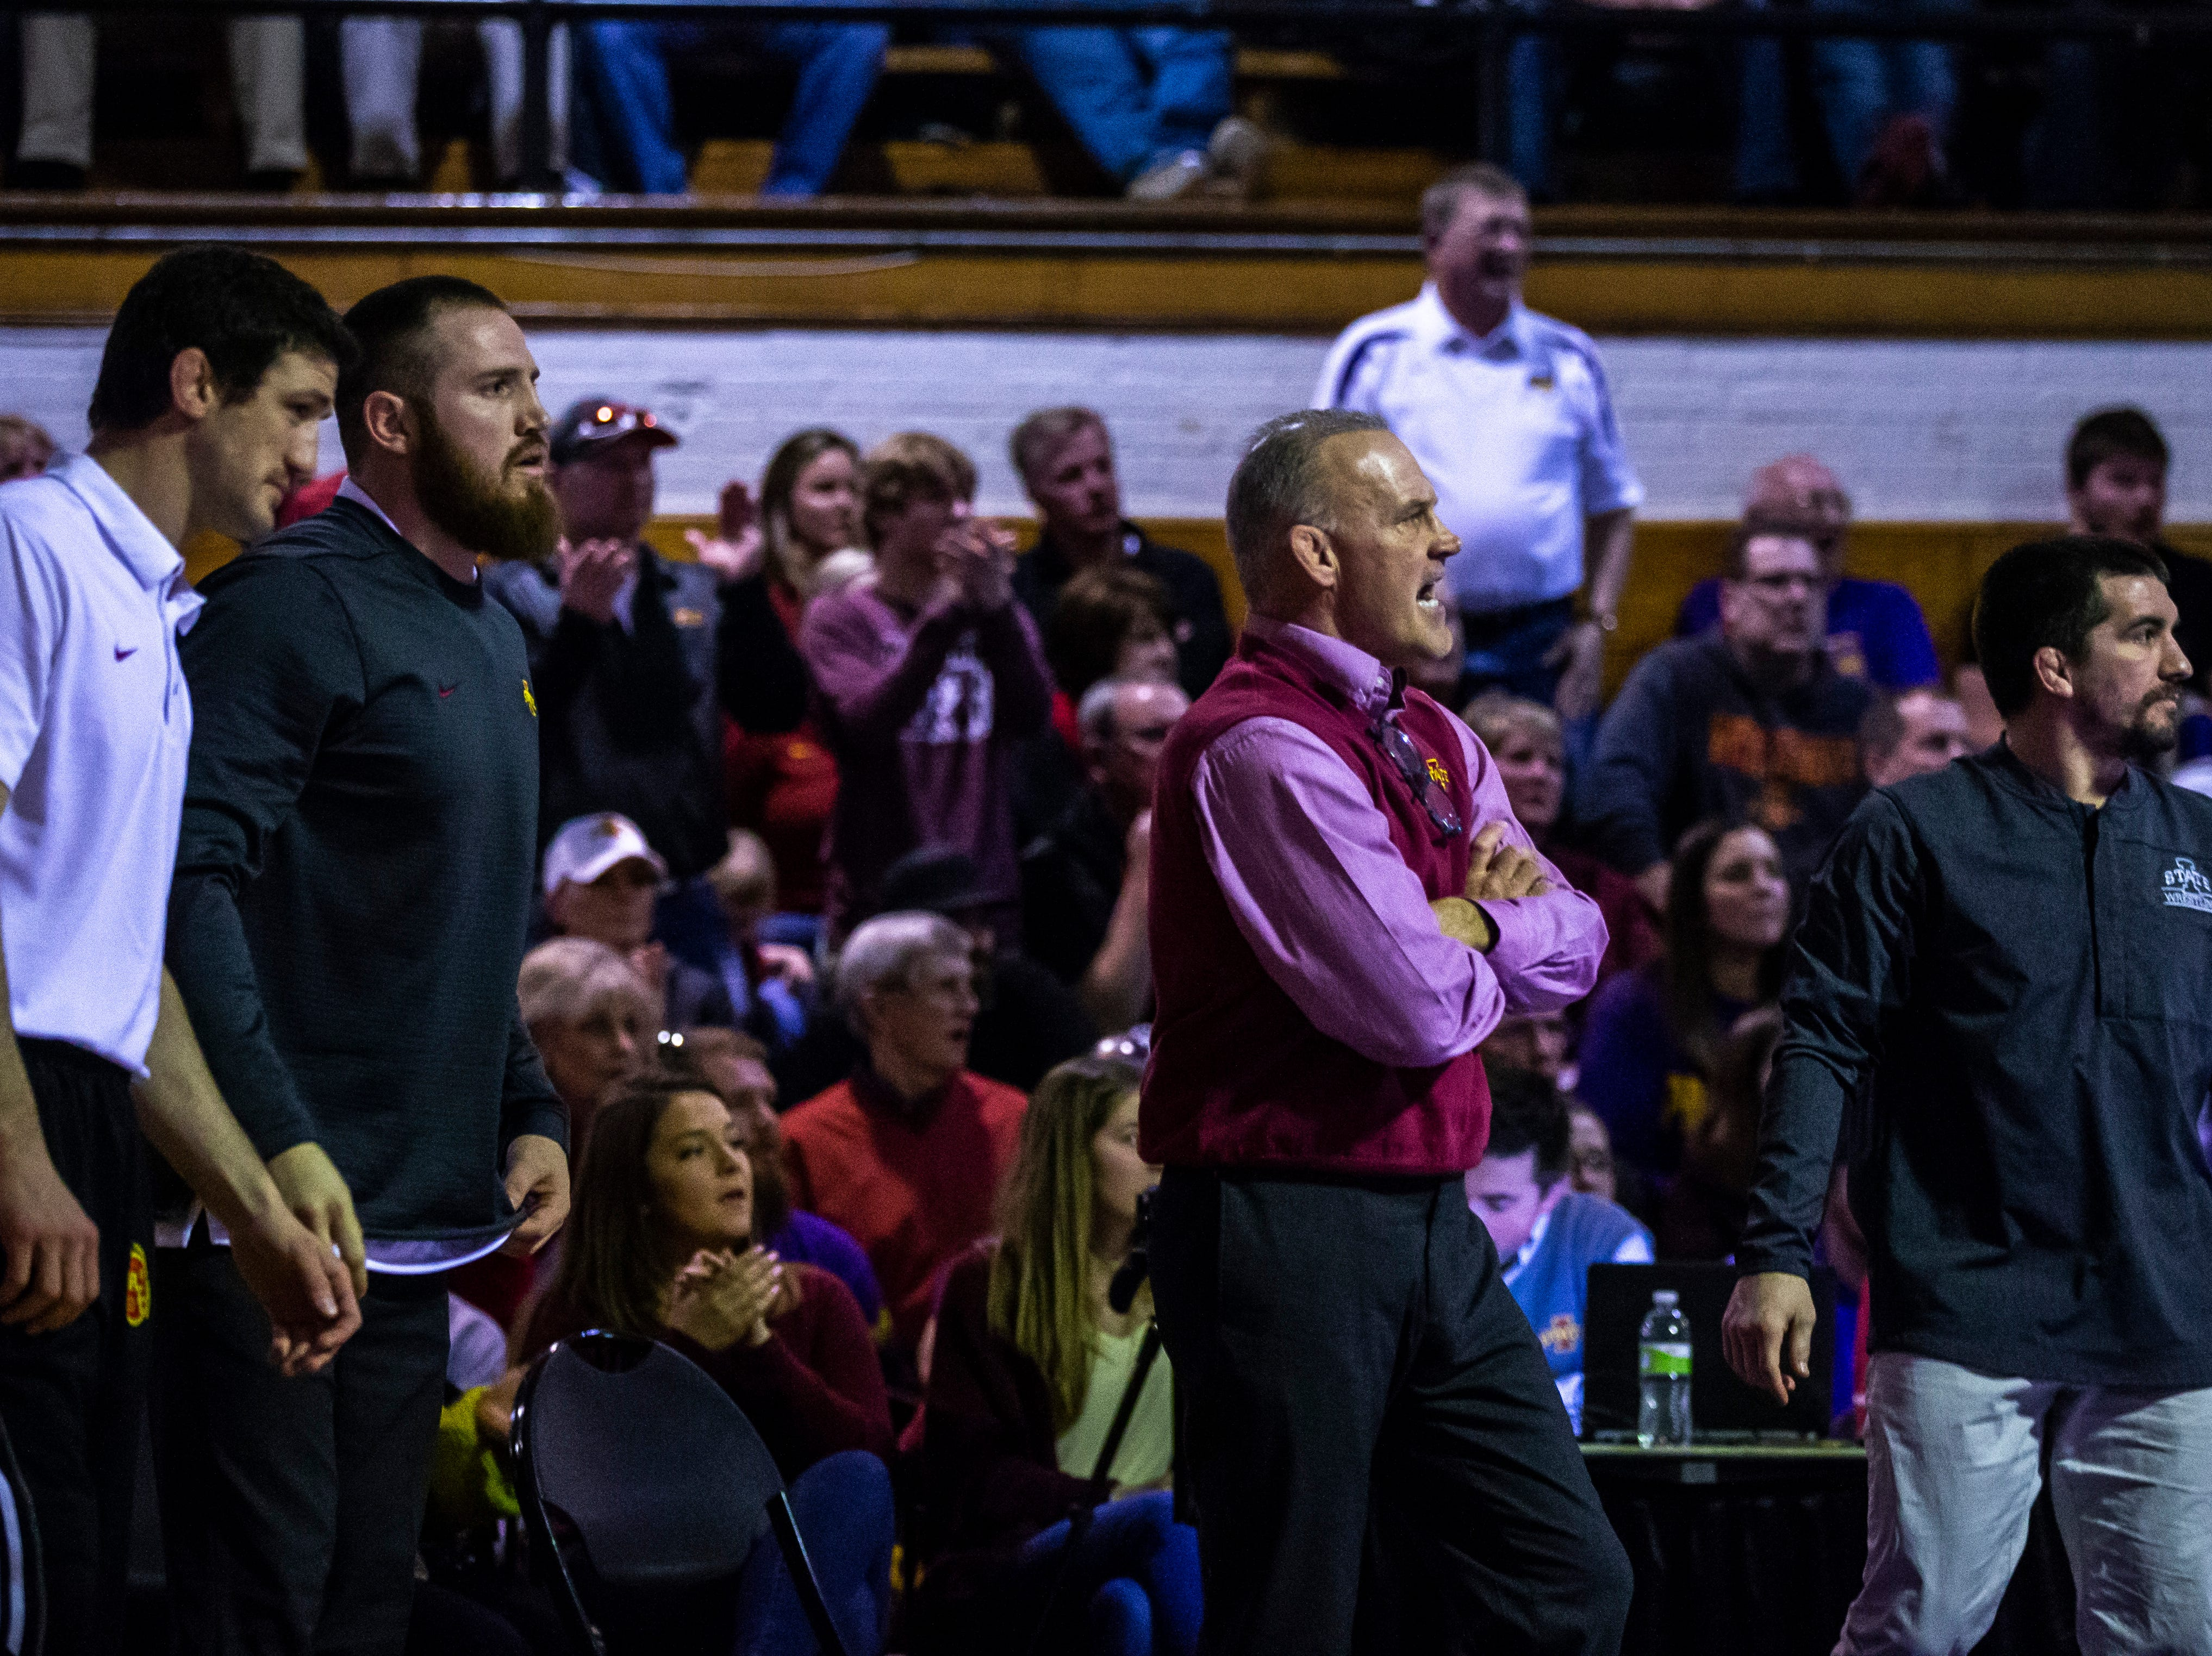 Iowa State head coach Kevin Dresser calls out during a NCAA Big 12 wrestling dual on Thursday, Feb. 21, 2019 at the West Gymnasium in Cedar Falls, Iowa.